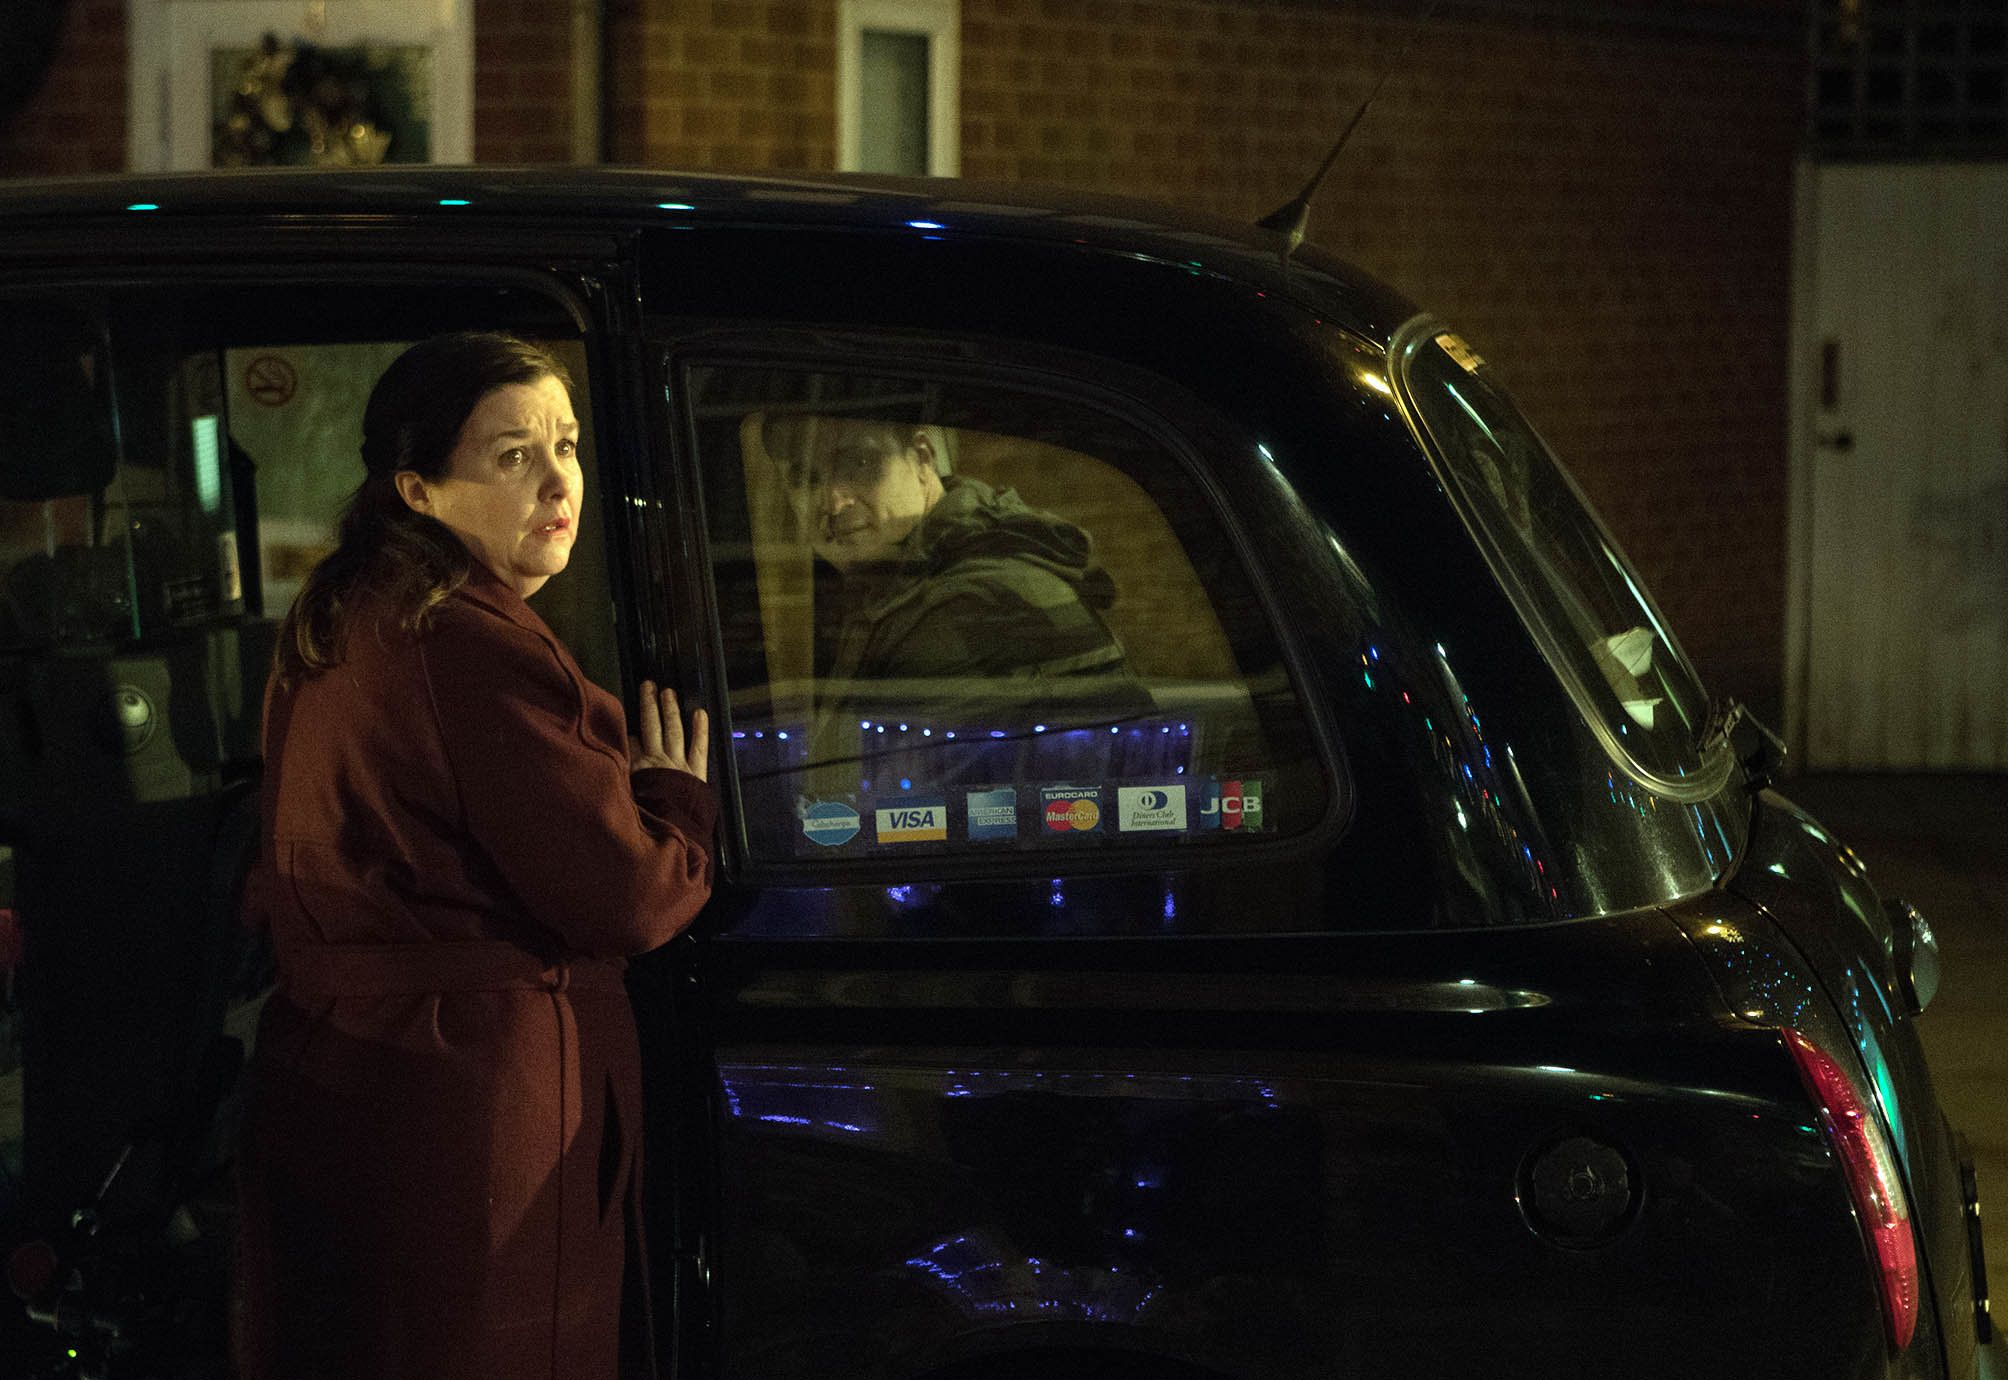 'Corrie' Spoiler! Is Mary Actually Going To Leave